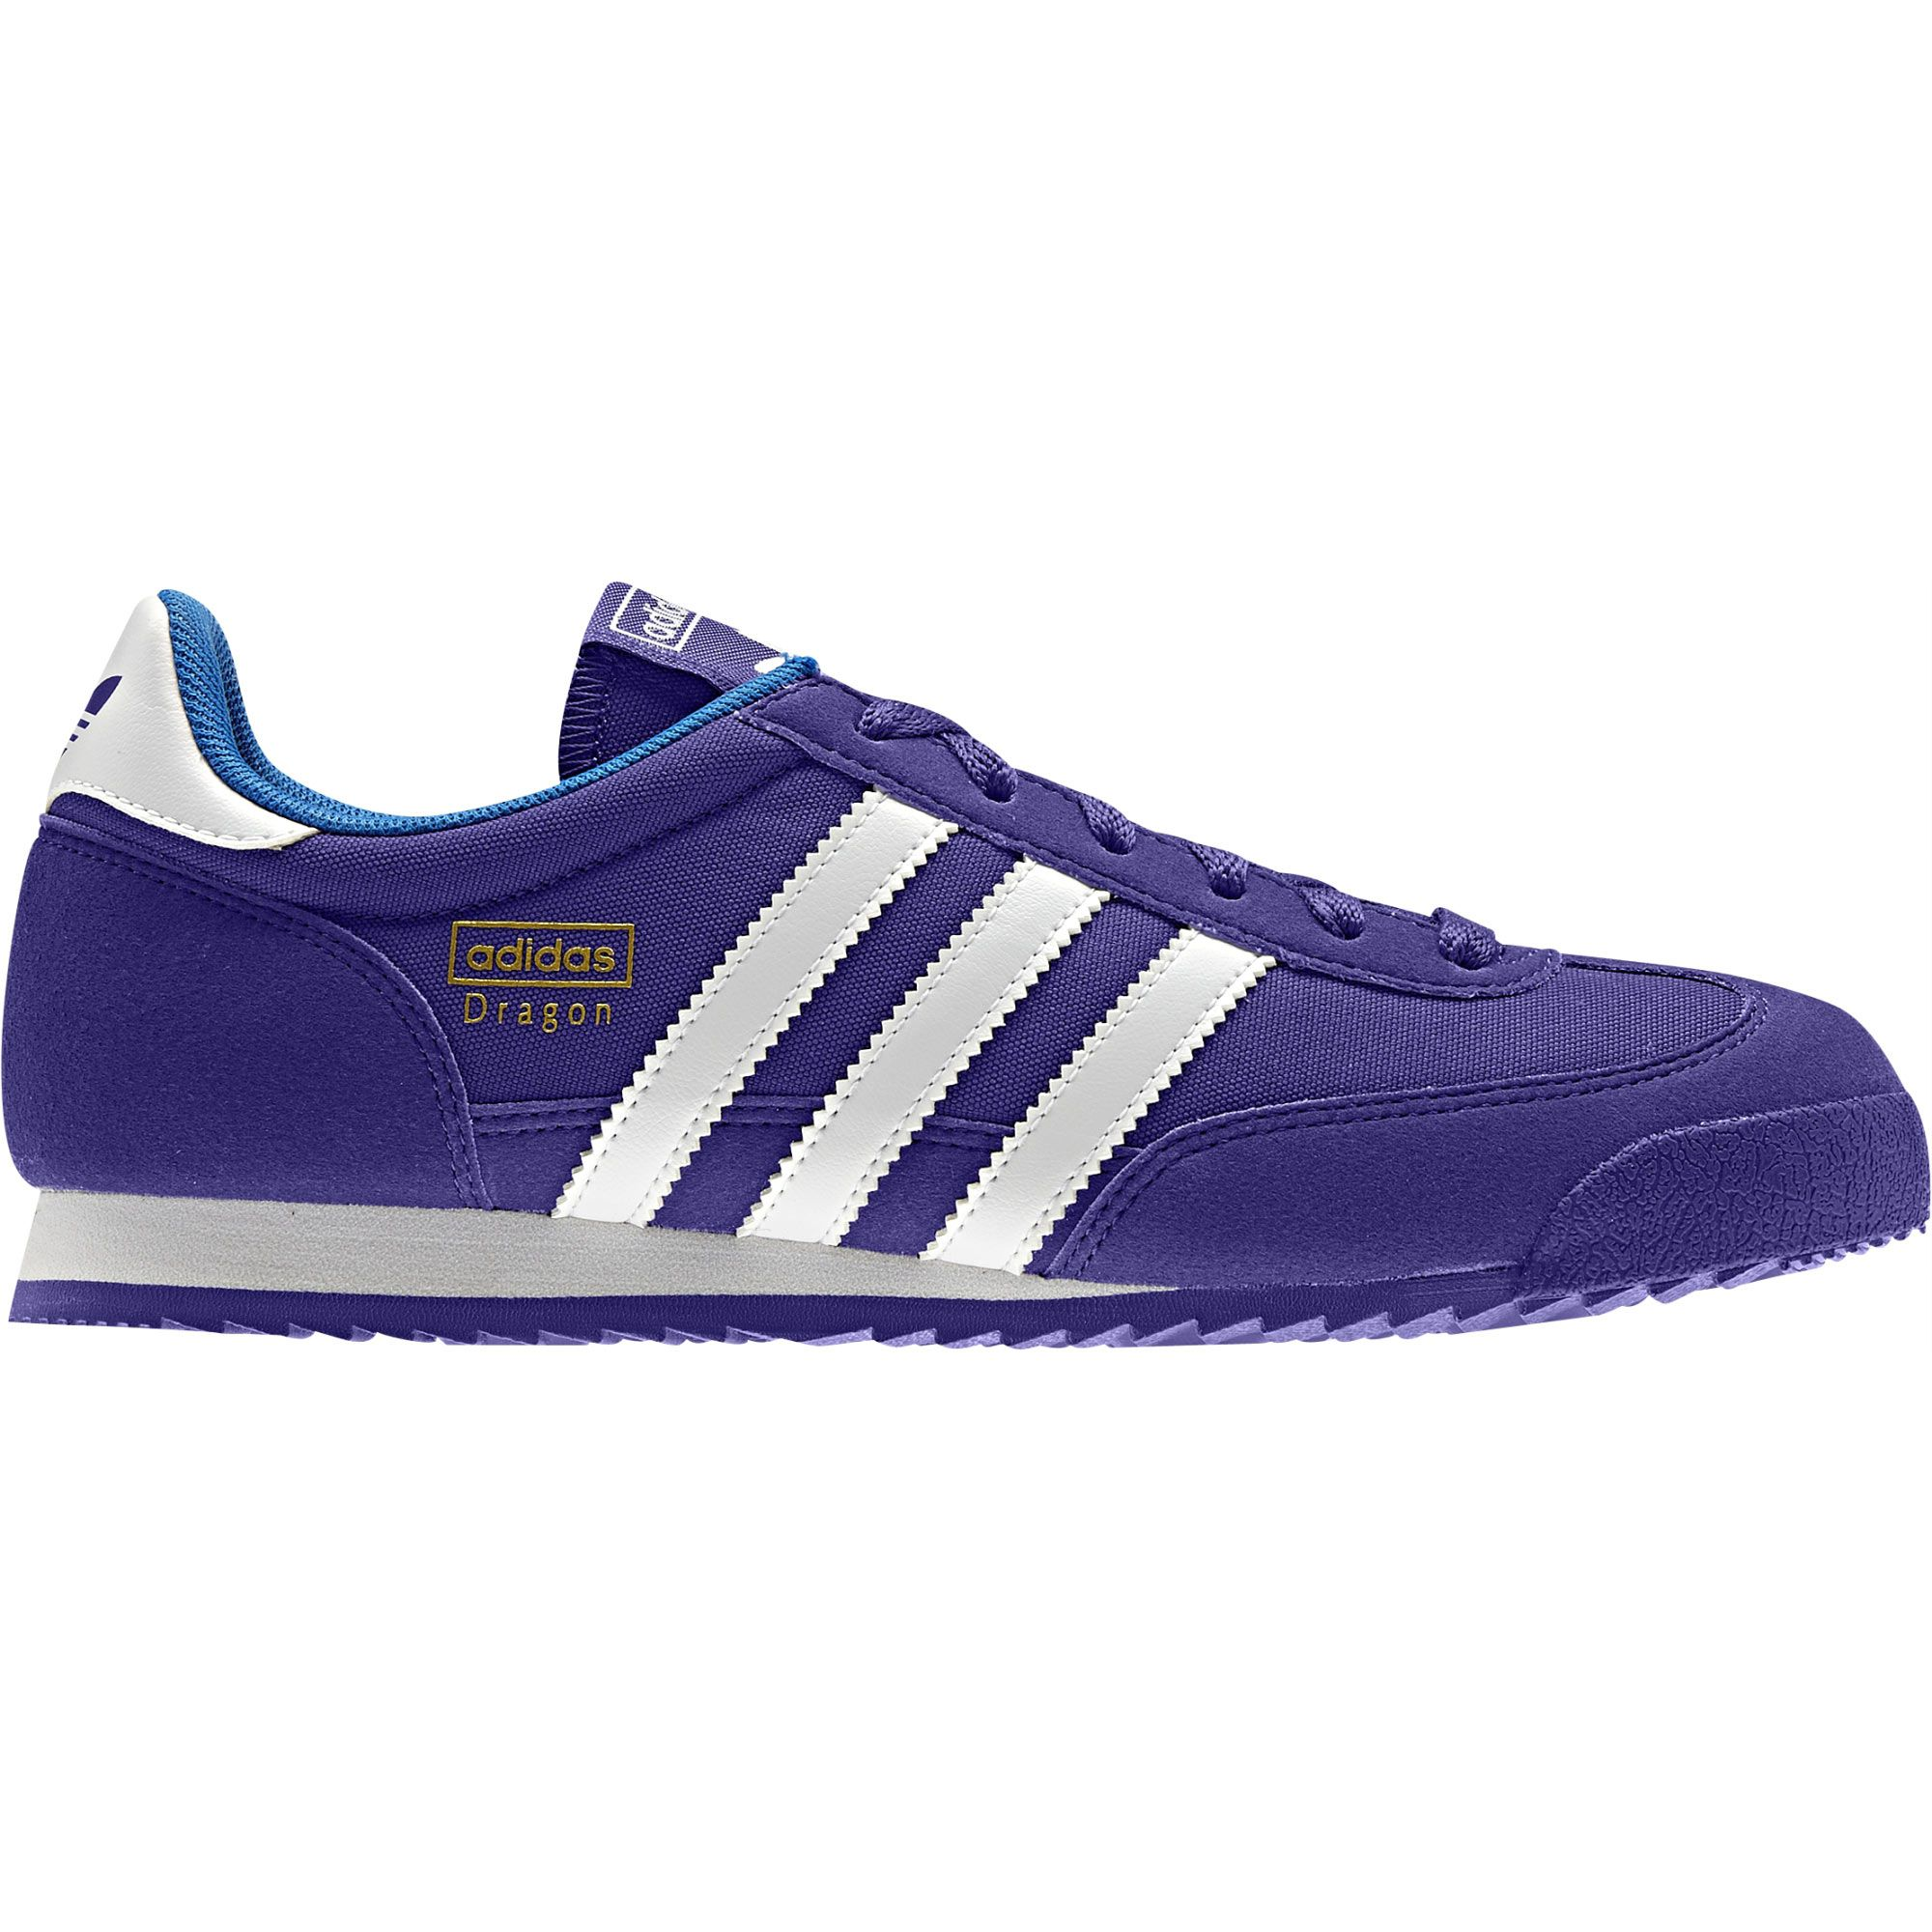 hot sale online f35d6 05c51 adidas Tenis Dragon Mujer   adidas Mexico